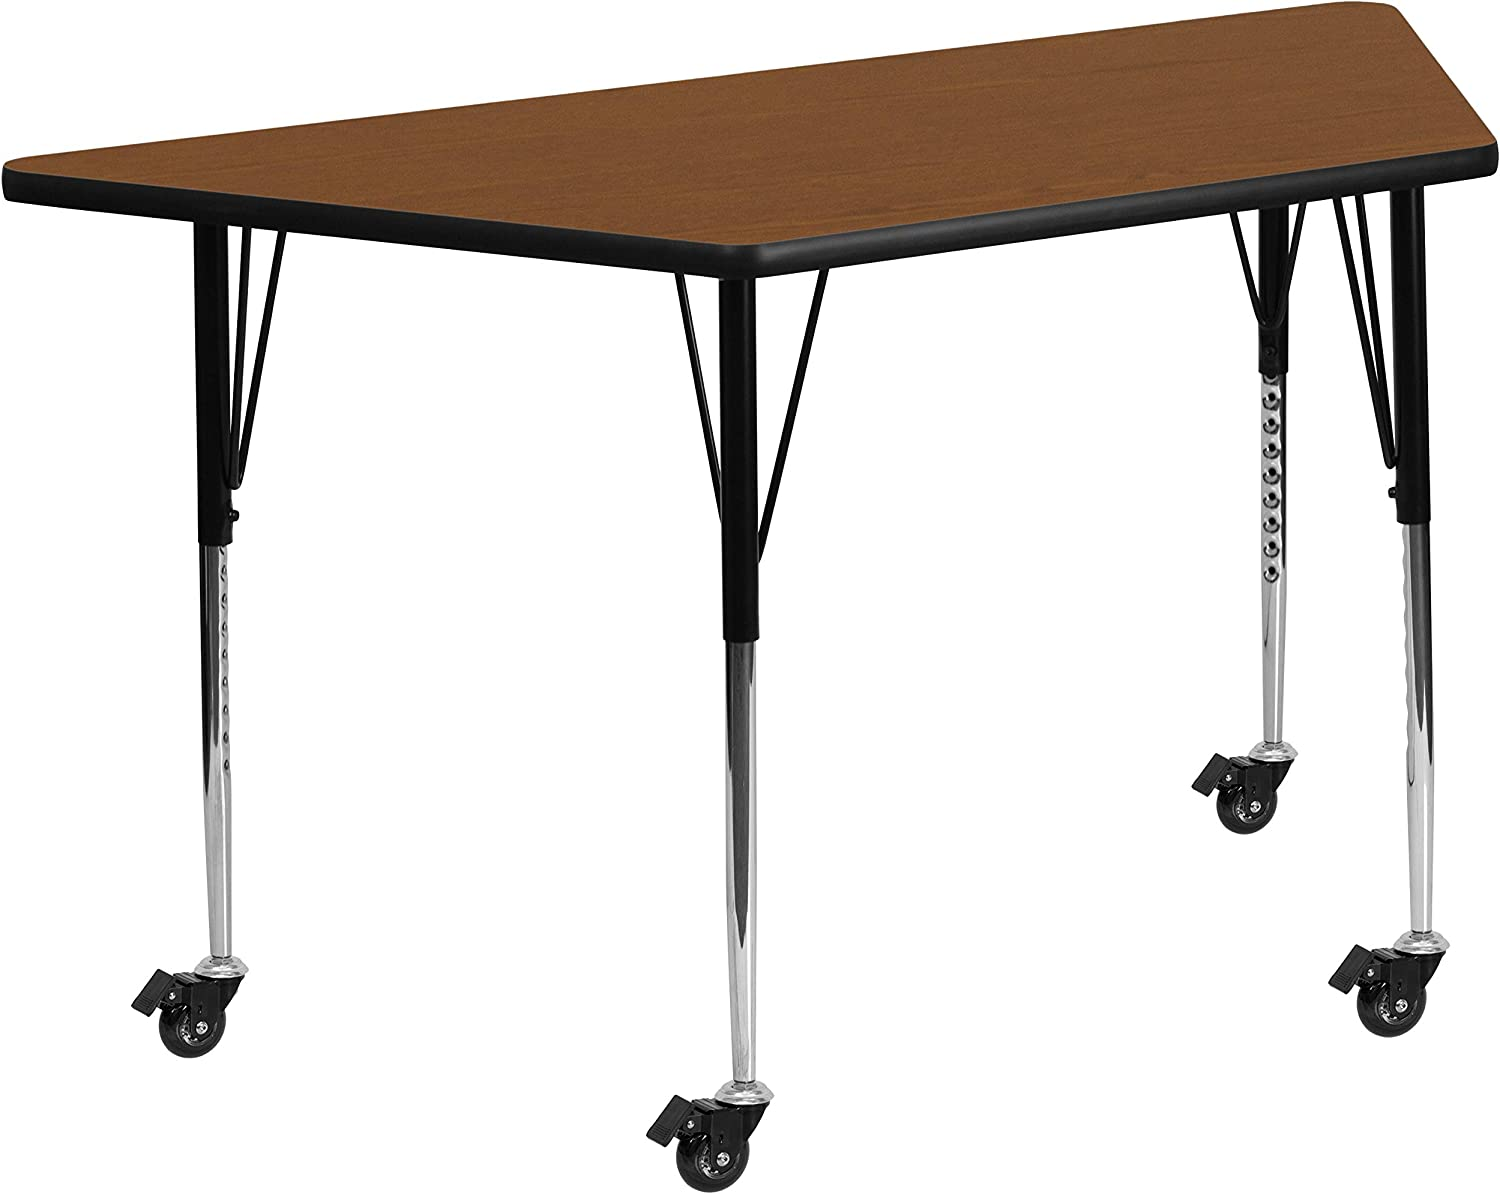 Flash Furniture Mobile 29.5''W x 57.25''L Trapezoid Oak HP Laminate Activity Table - Standard Height Adjustable Legs